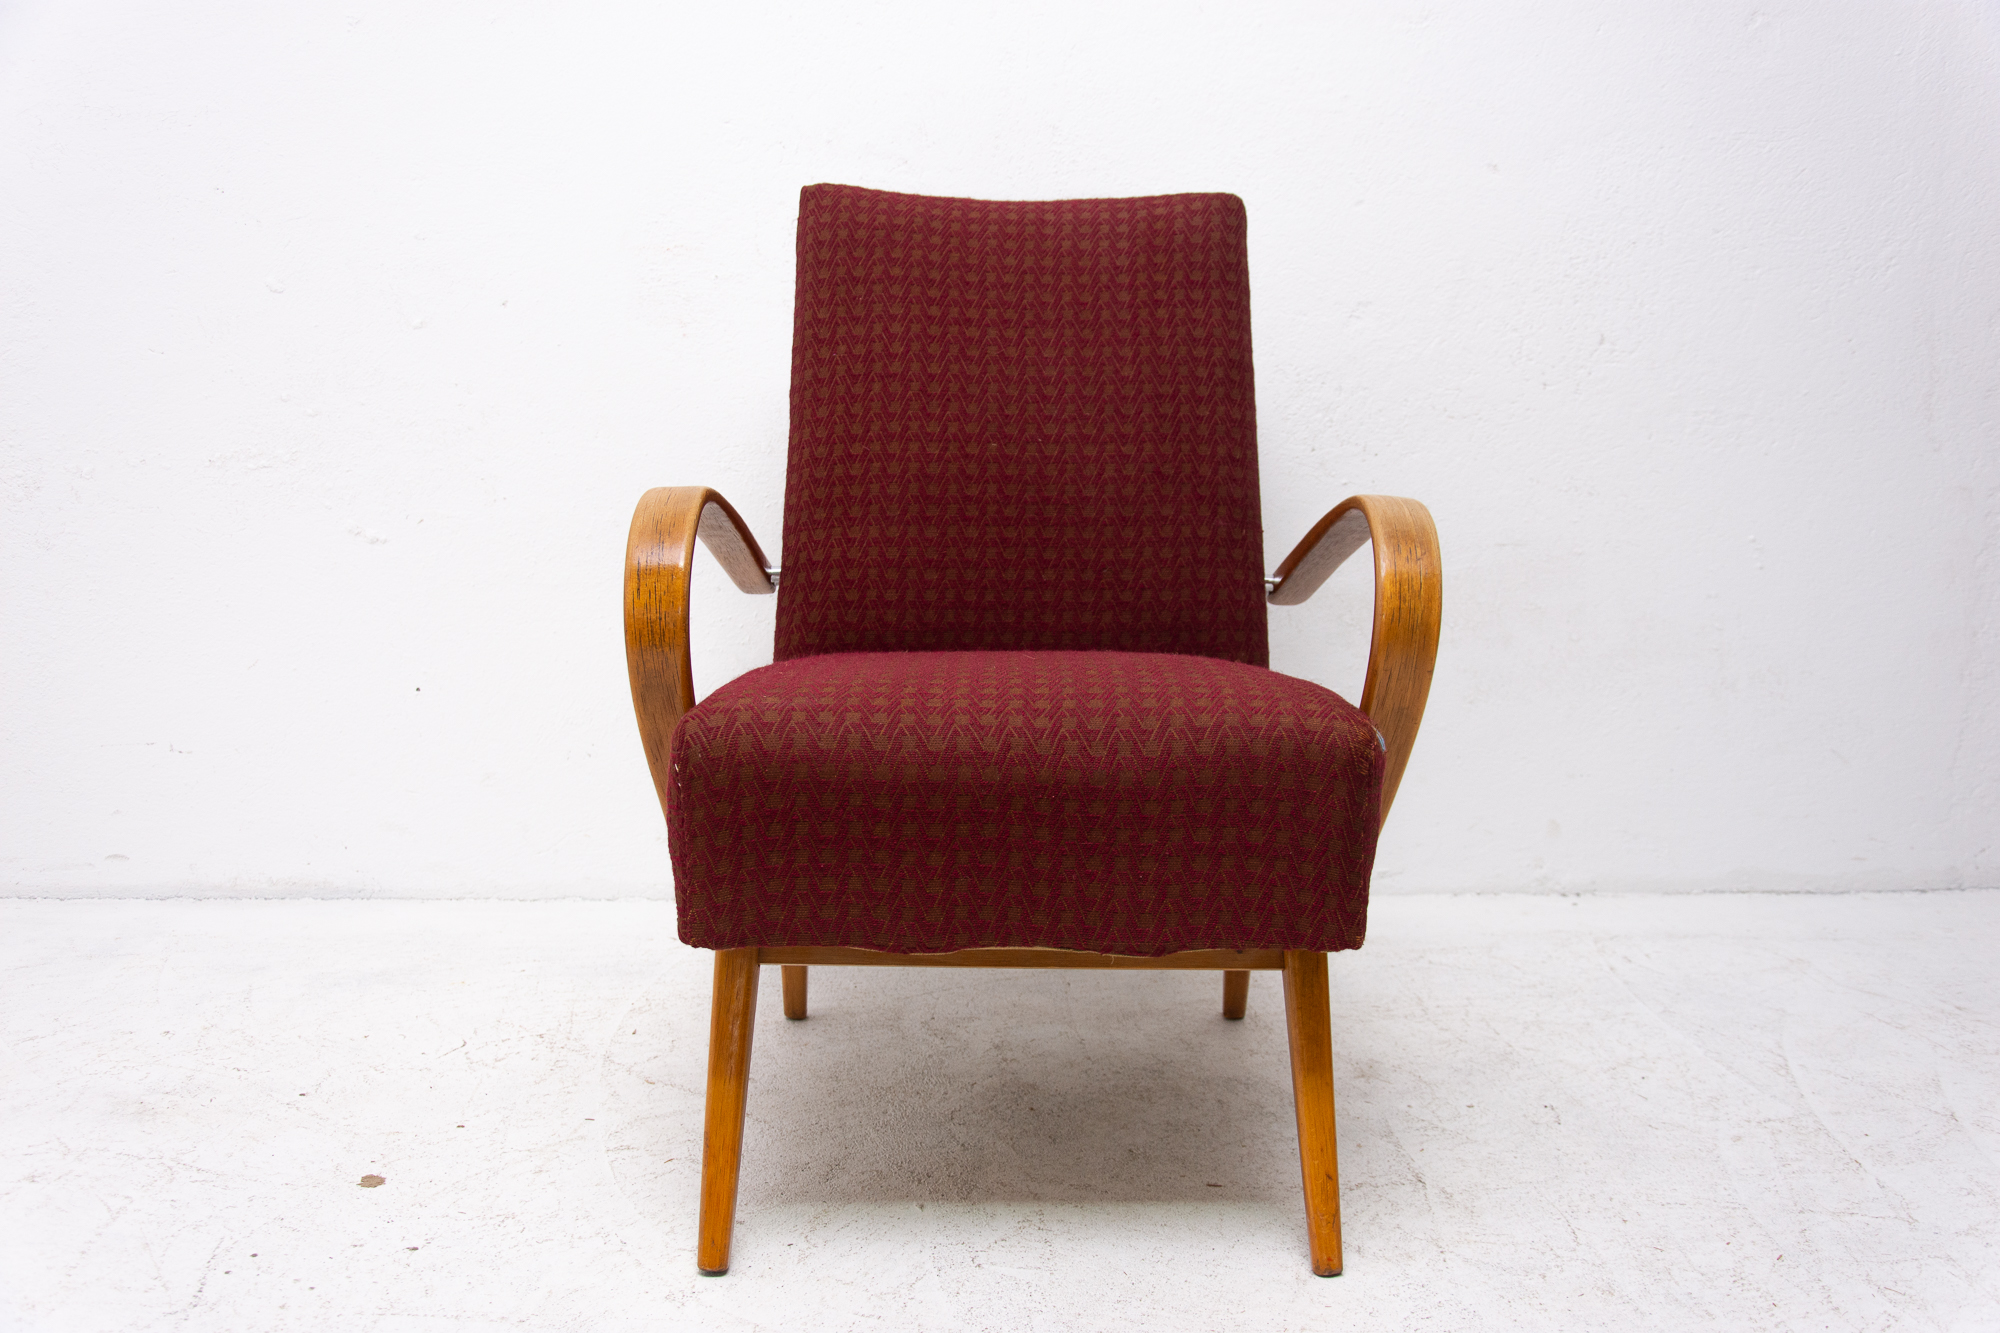 Image of: Mid Century Bentwood Armchair By Jaroslav Smidek 1960 S Czechoslovakia Your20th Com Wholesale Of The Antique Furniture Your20th Com